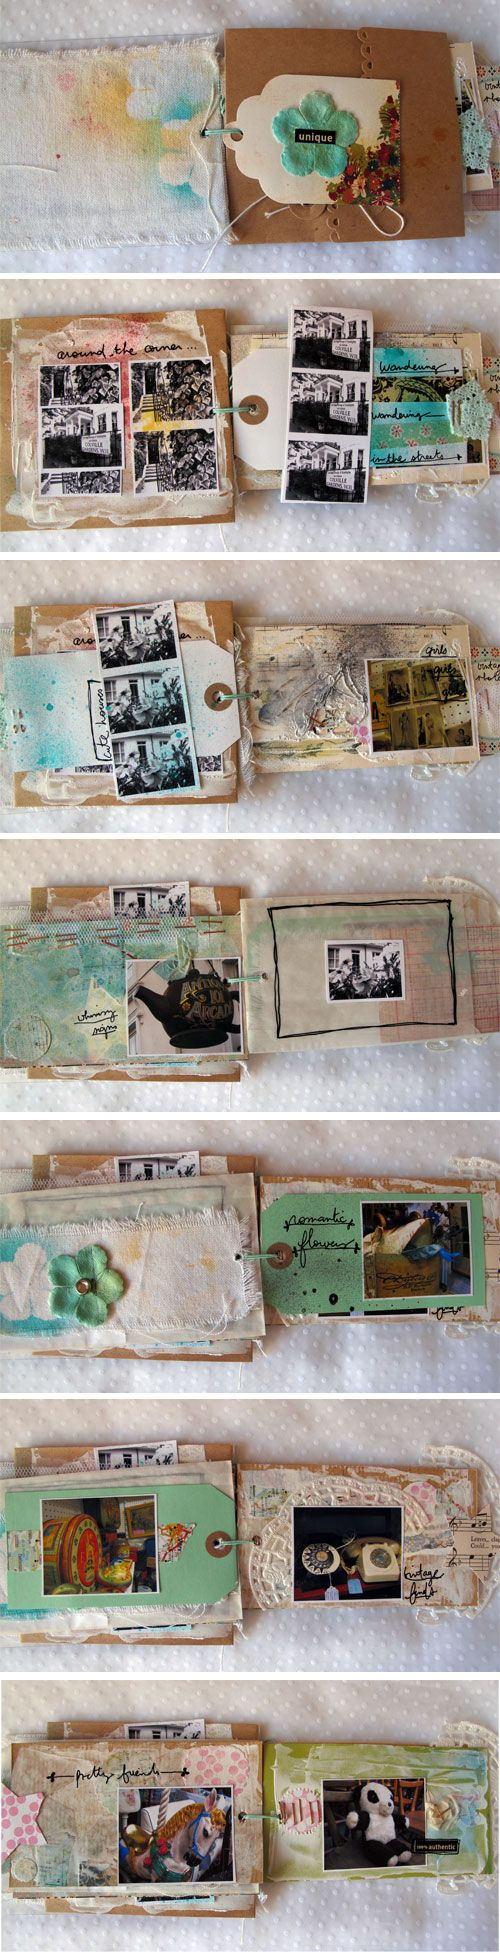 Junk Journal - @Sadey Whitlock Whitlock Whitlock Whitlock Whitlock Whitlock Vogel you Should Do This With Travel Tickets, bus passes, etc. ...